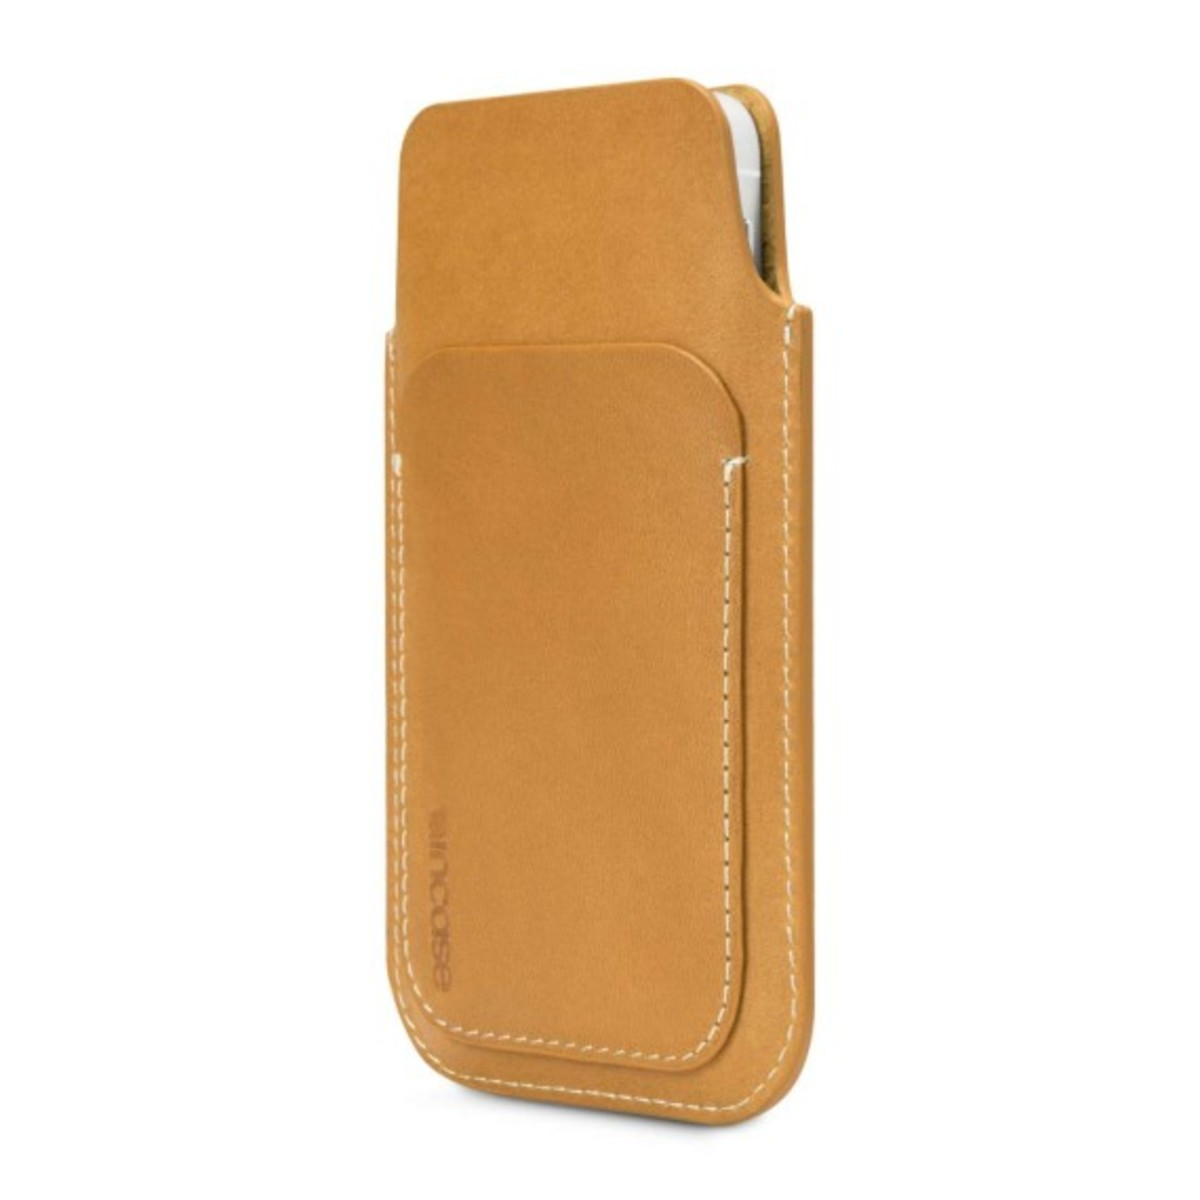 incase-iphone-5-leather-pouch-03